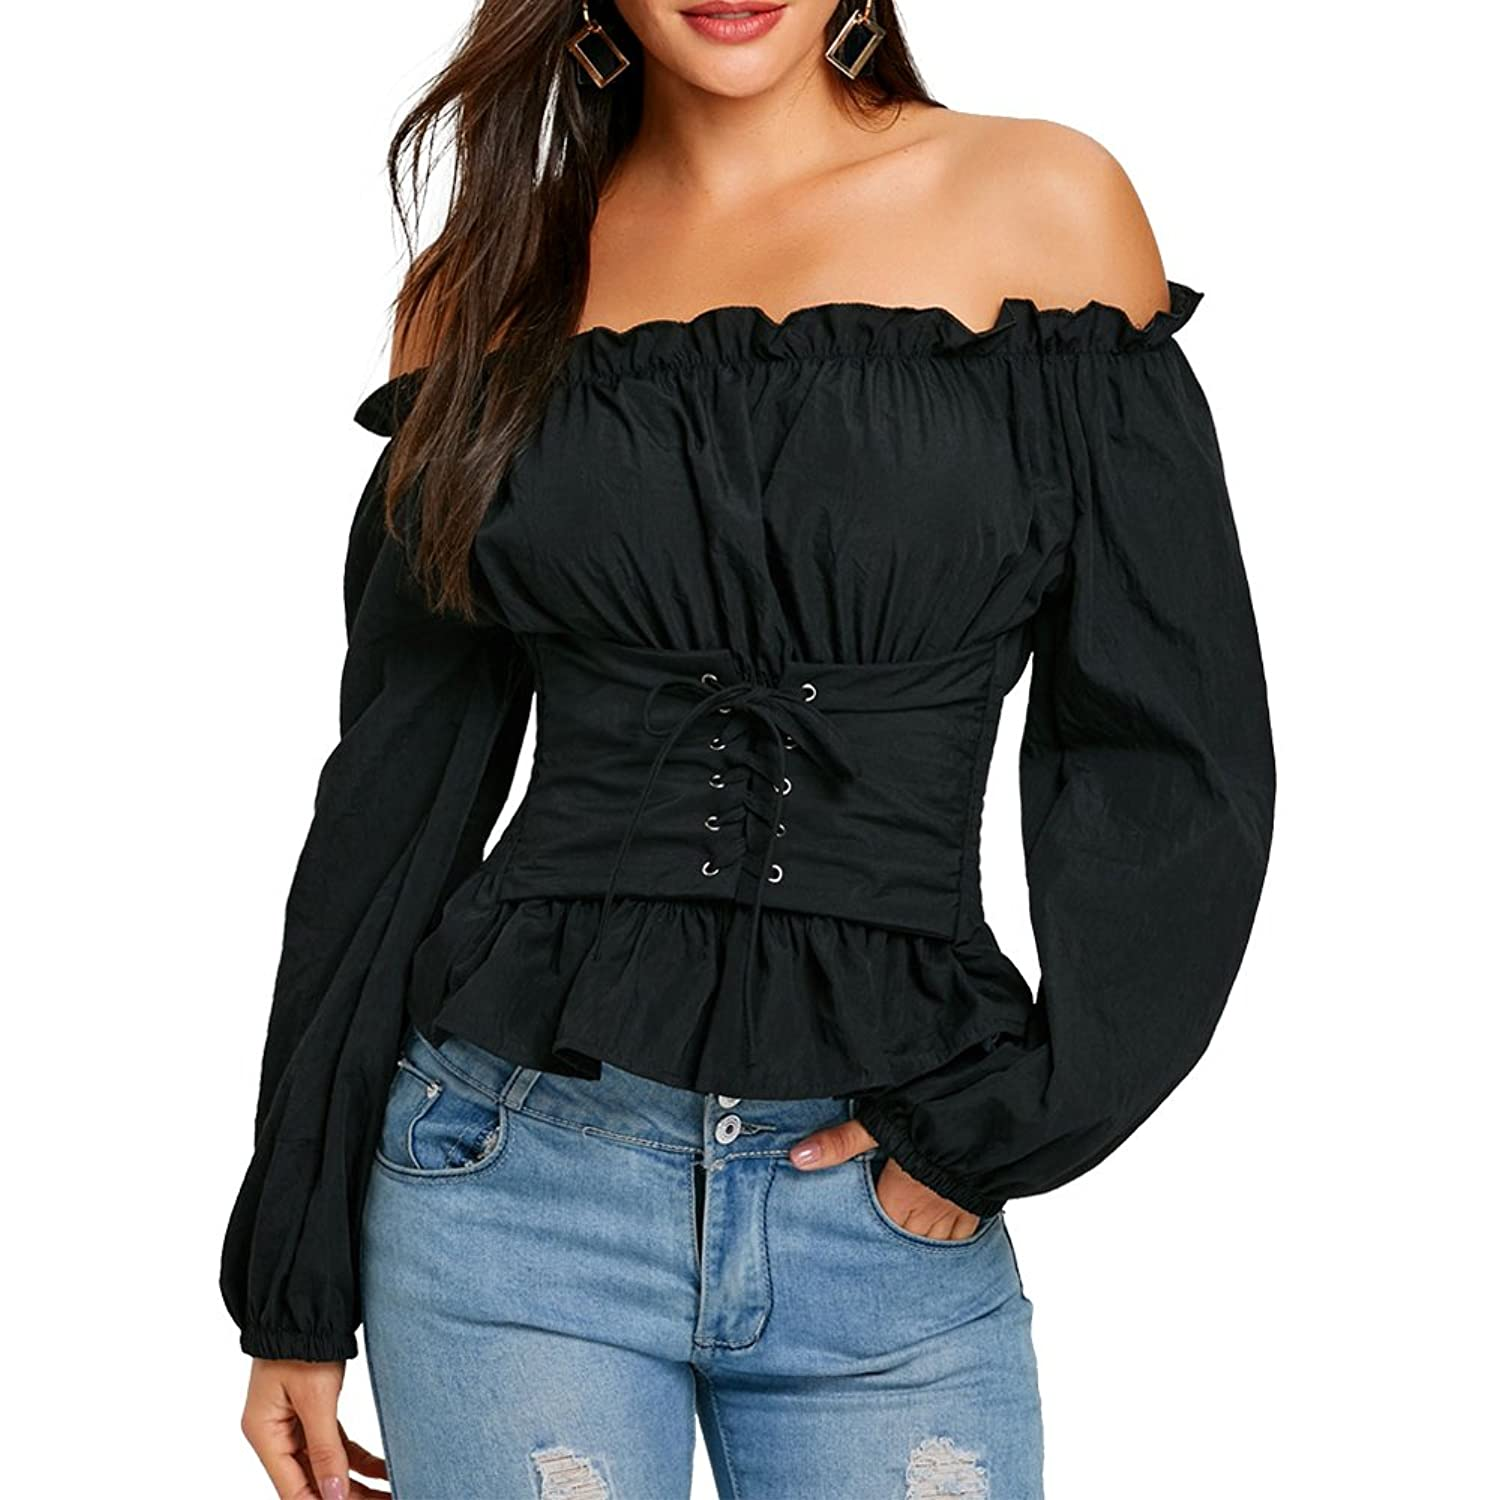 bf988e79496 lluring plain blouse features off the shoulder collarline, long sleeves and  lace up front design